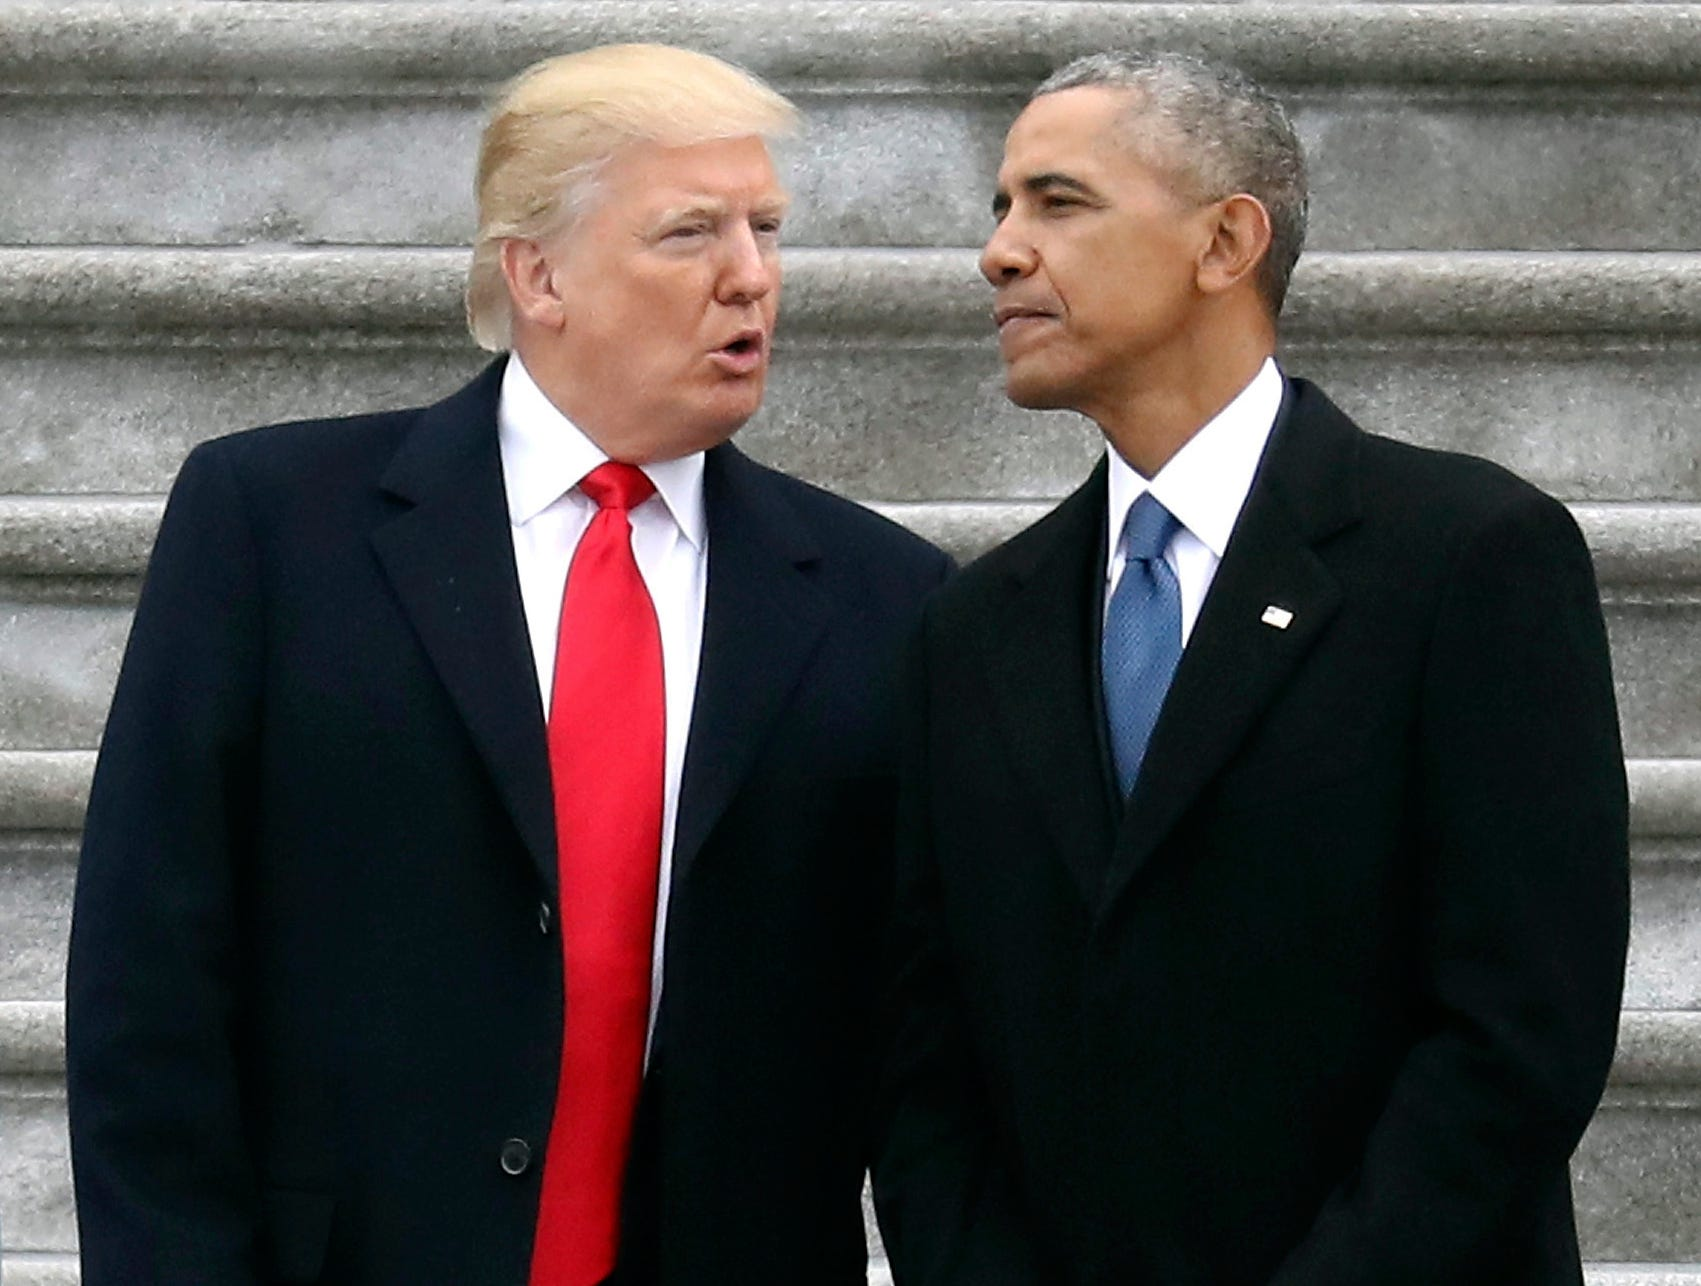 Is this Trump's or Obama's economy? | Guestview